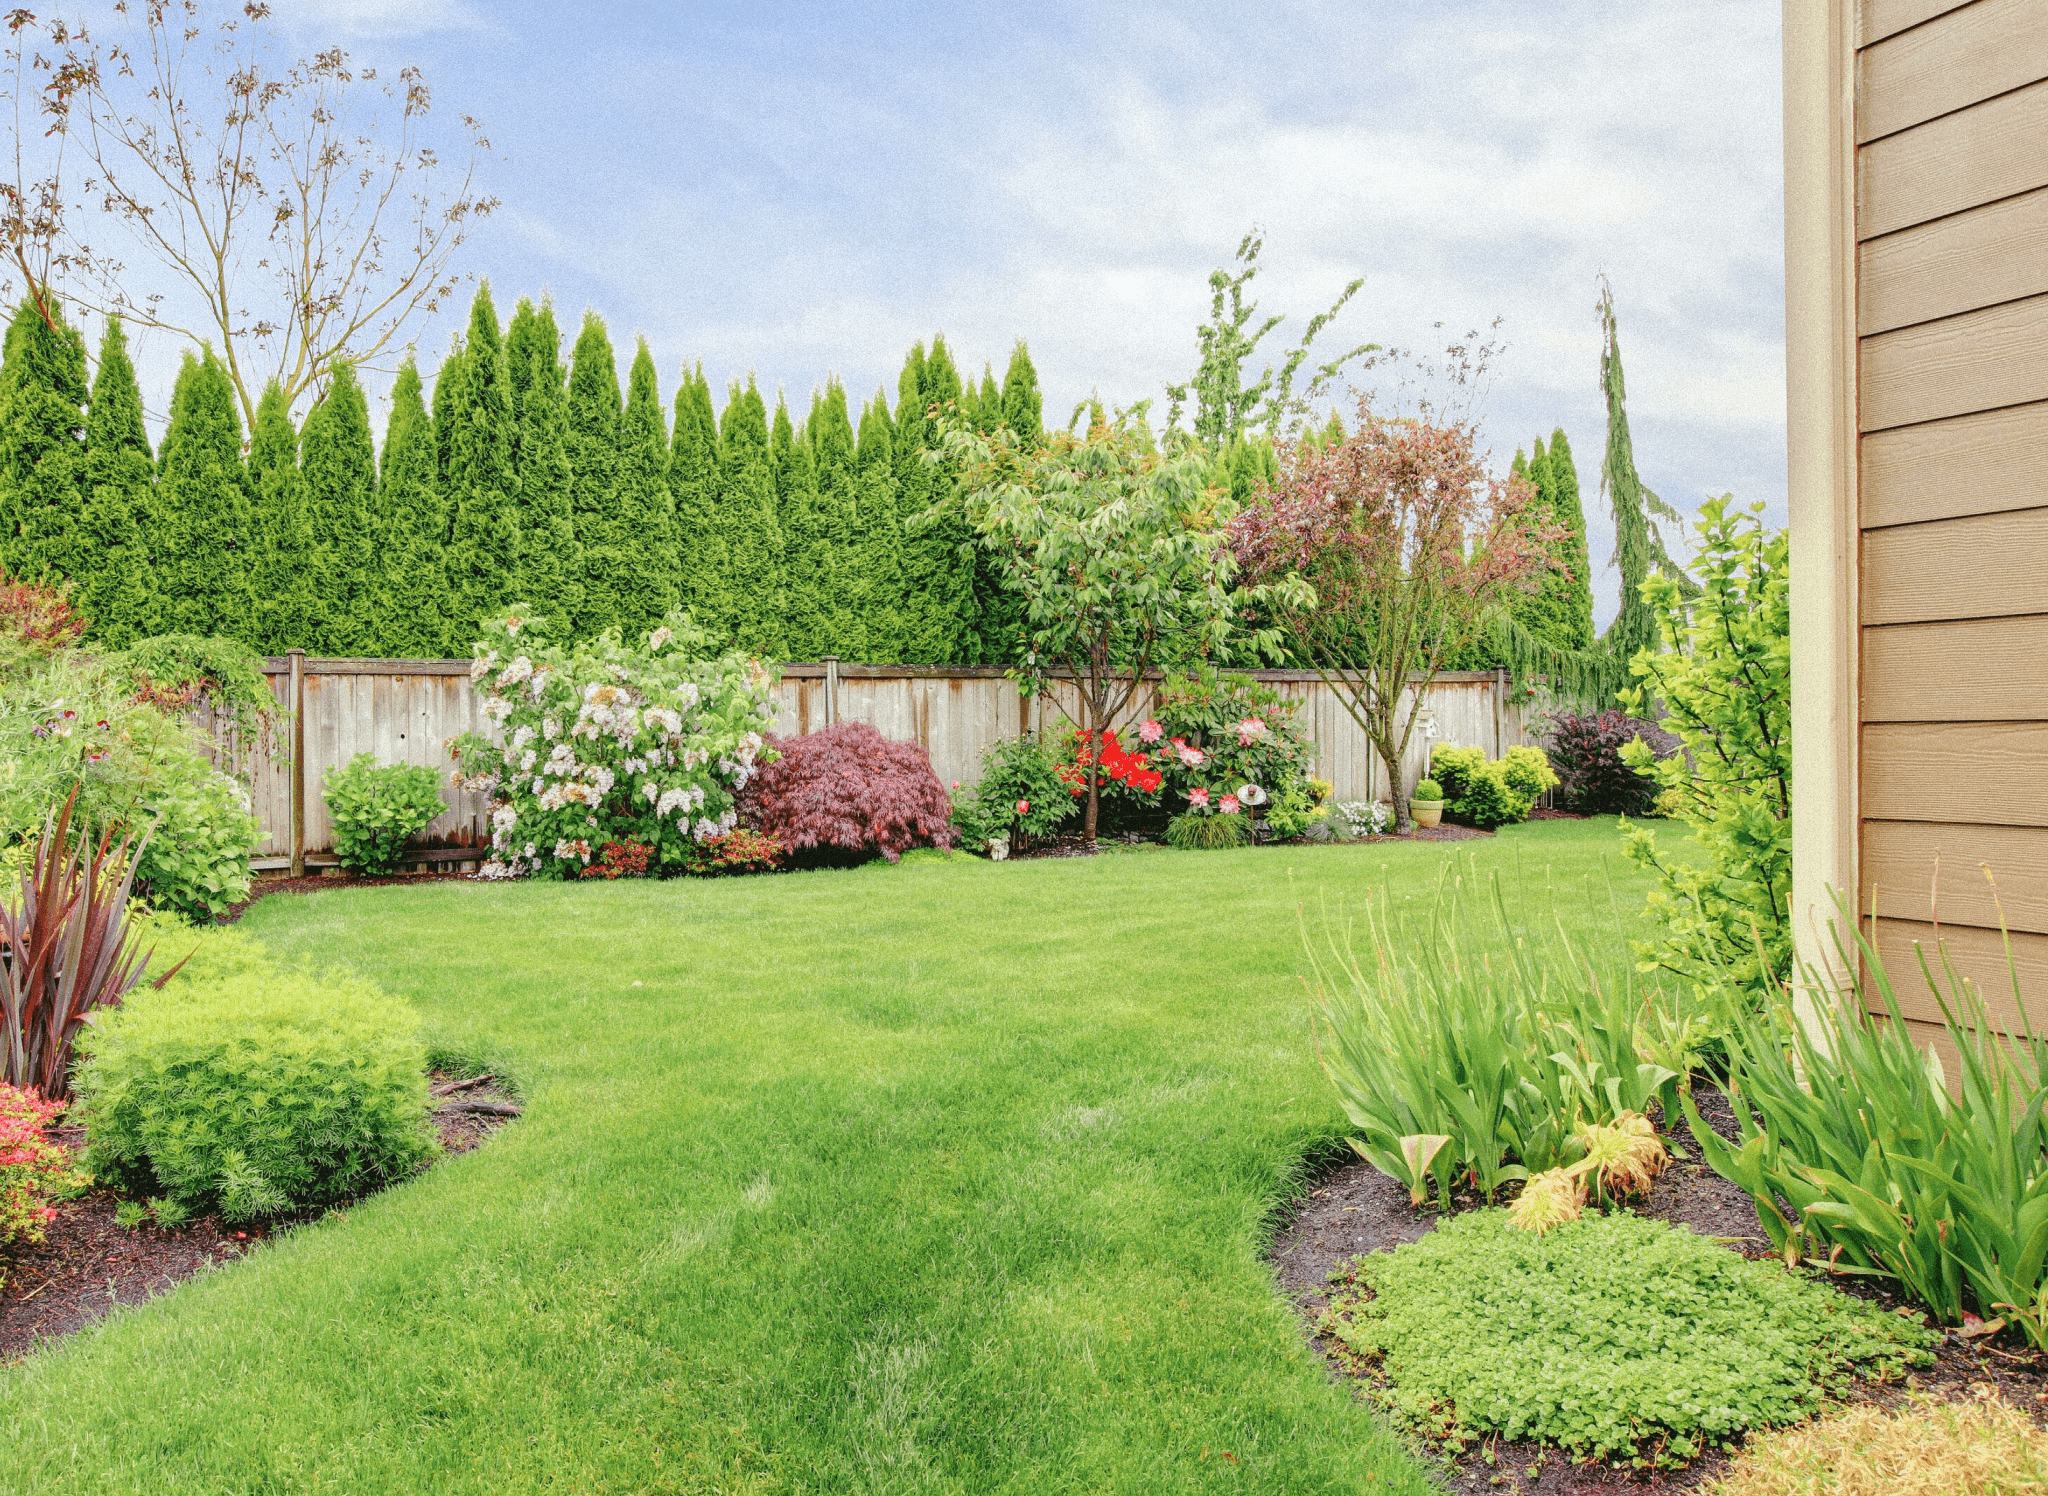 2021 Landscaping Prices Landscaping Cost Examples Hourly Rates